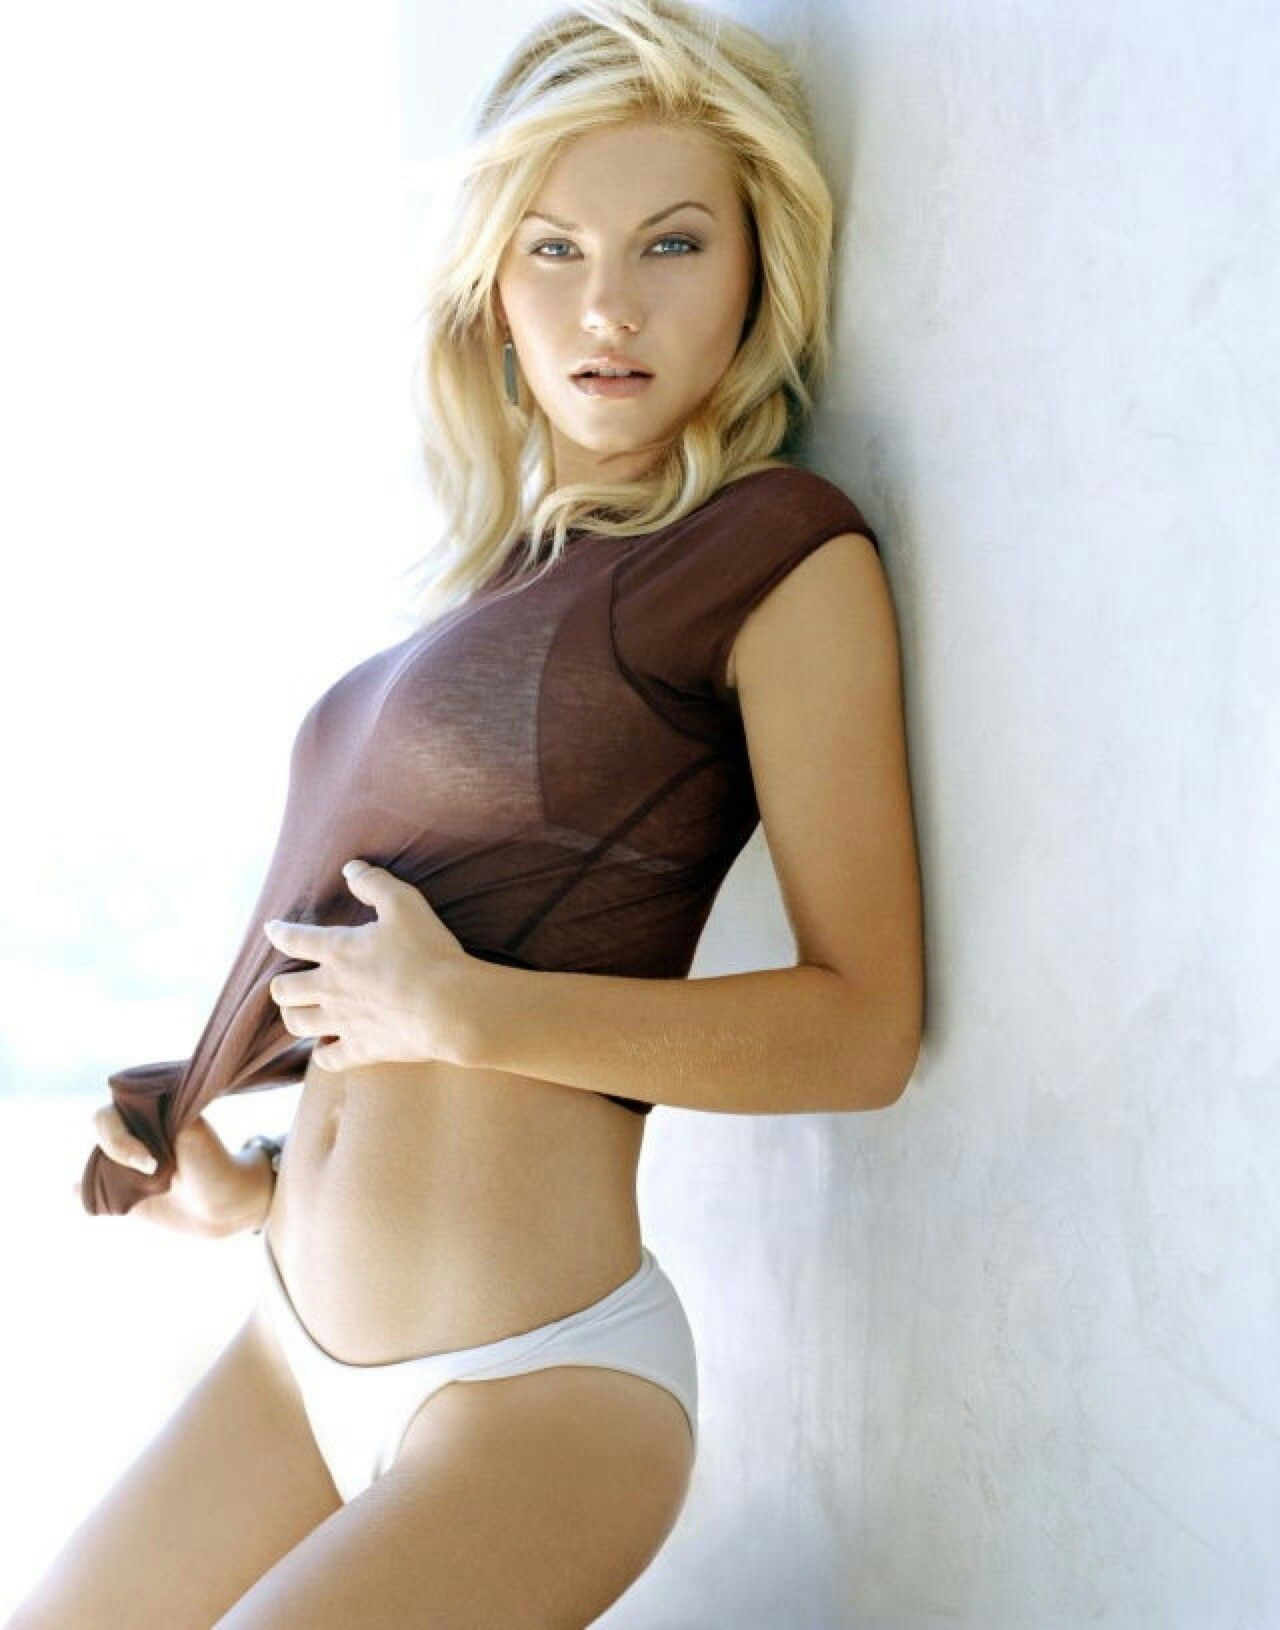 Elisha cuthbert look alike porn star And